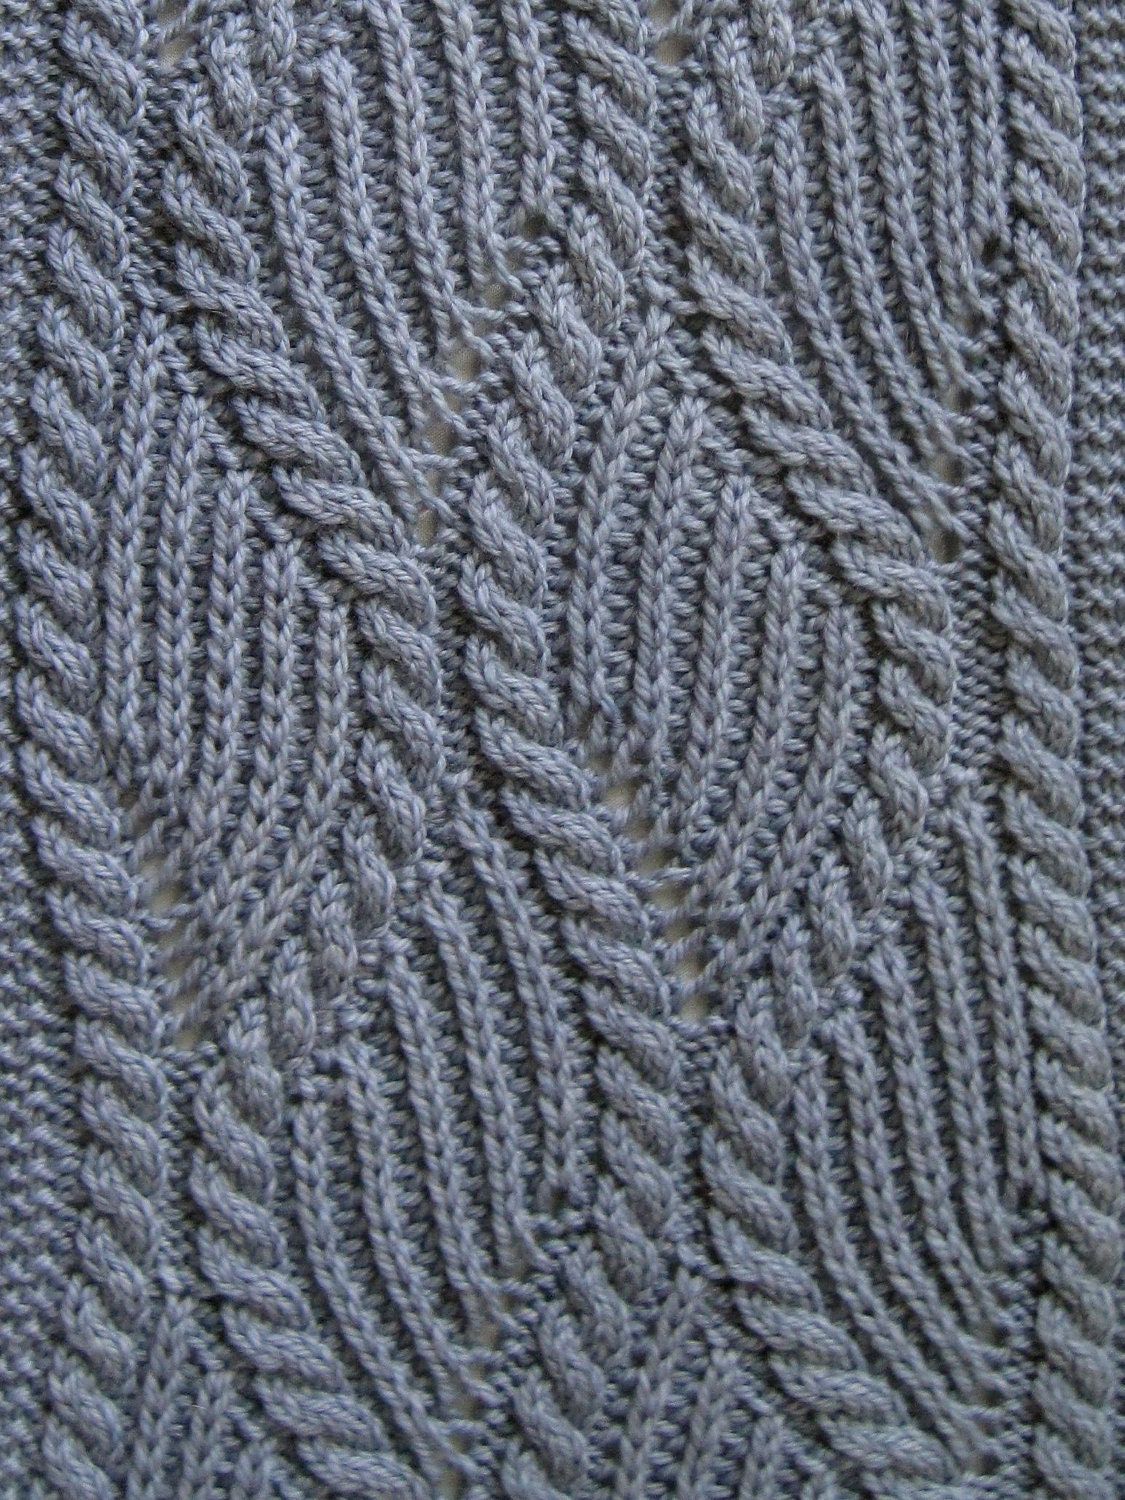 Cable Scarf Knitting Pattern : Knit Scarf Pattern: Brioche and Traveling Cable Knitting